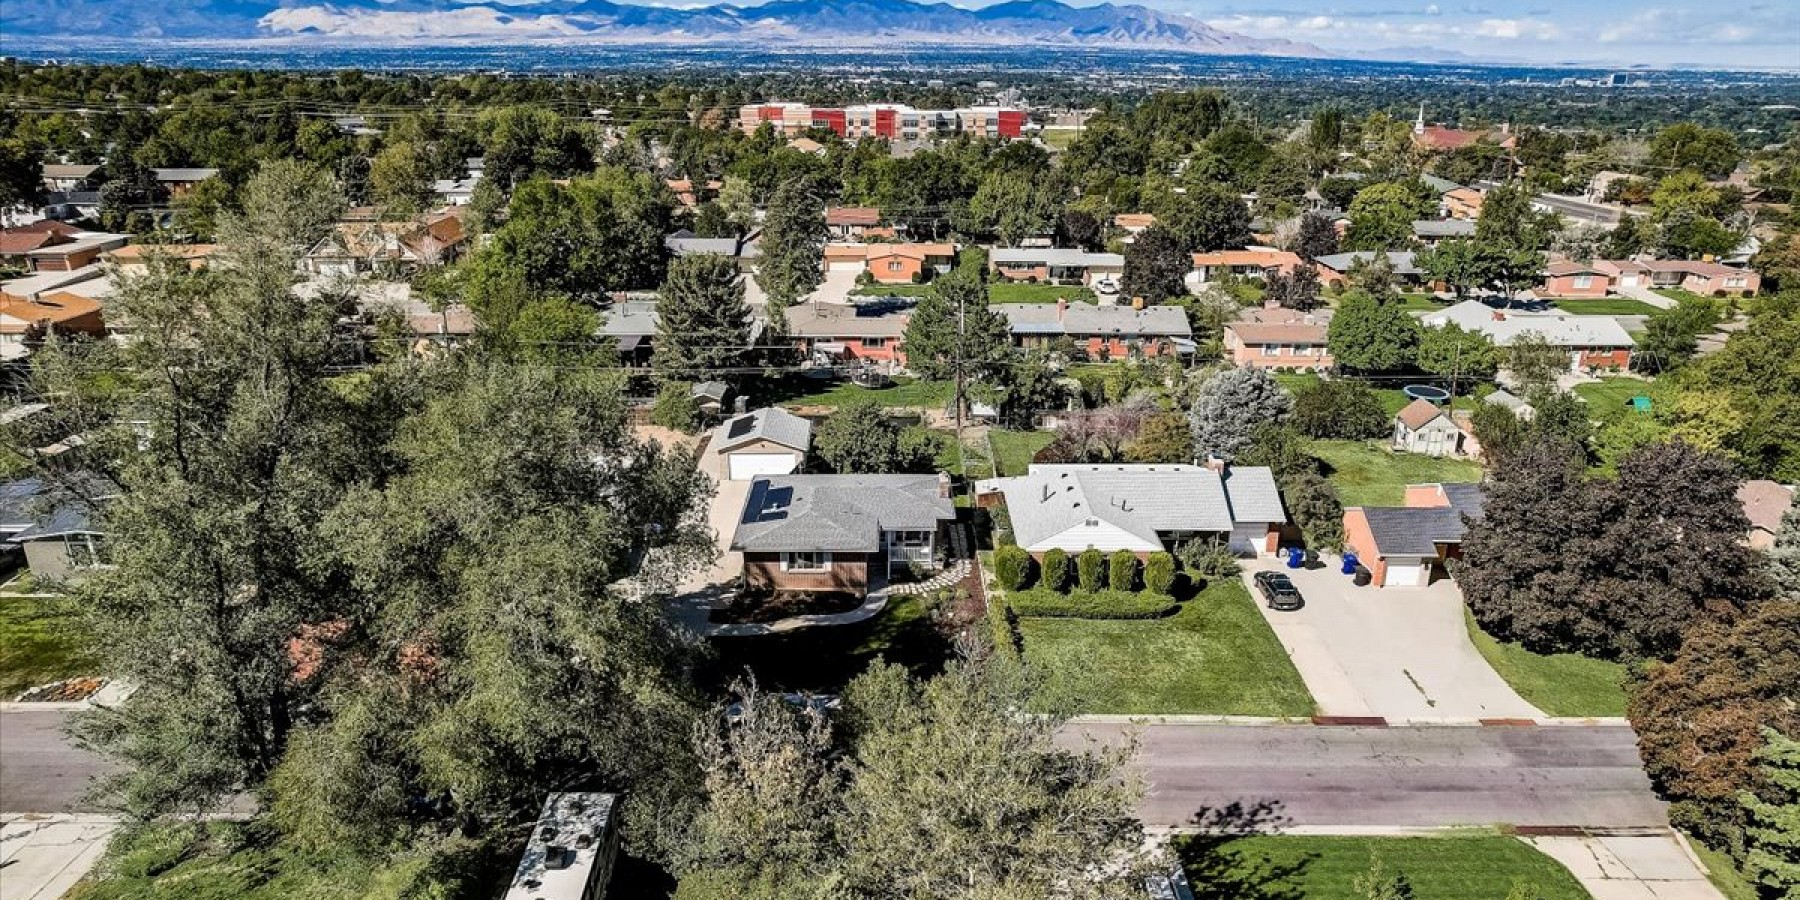 7080 South 2870 East, Cottonwood Heights, UT 84121